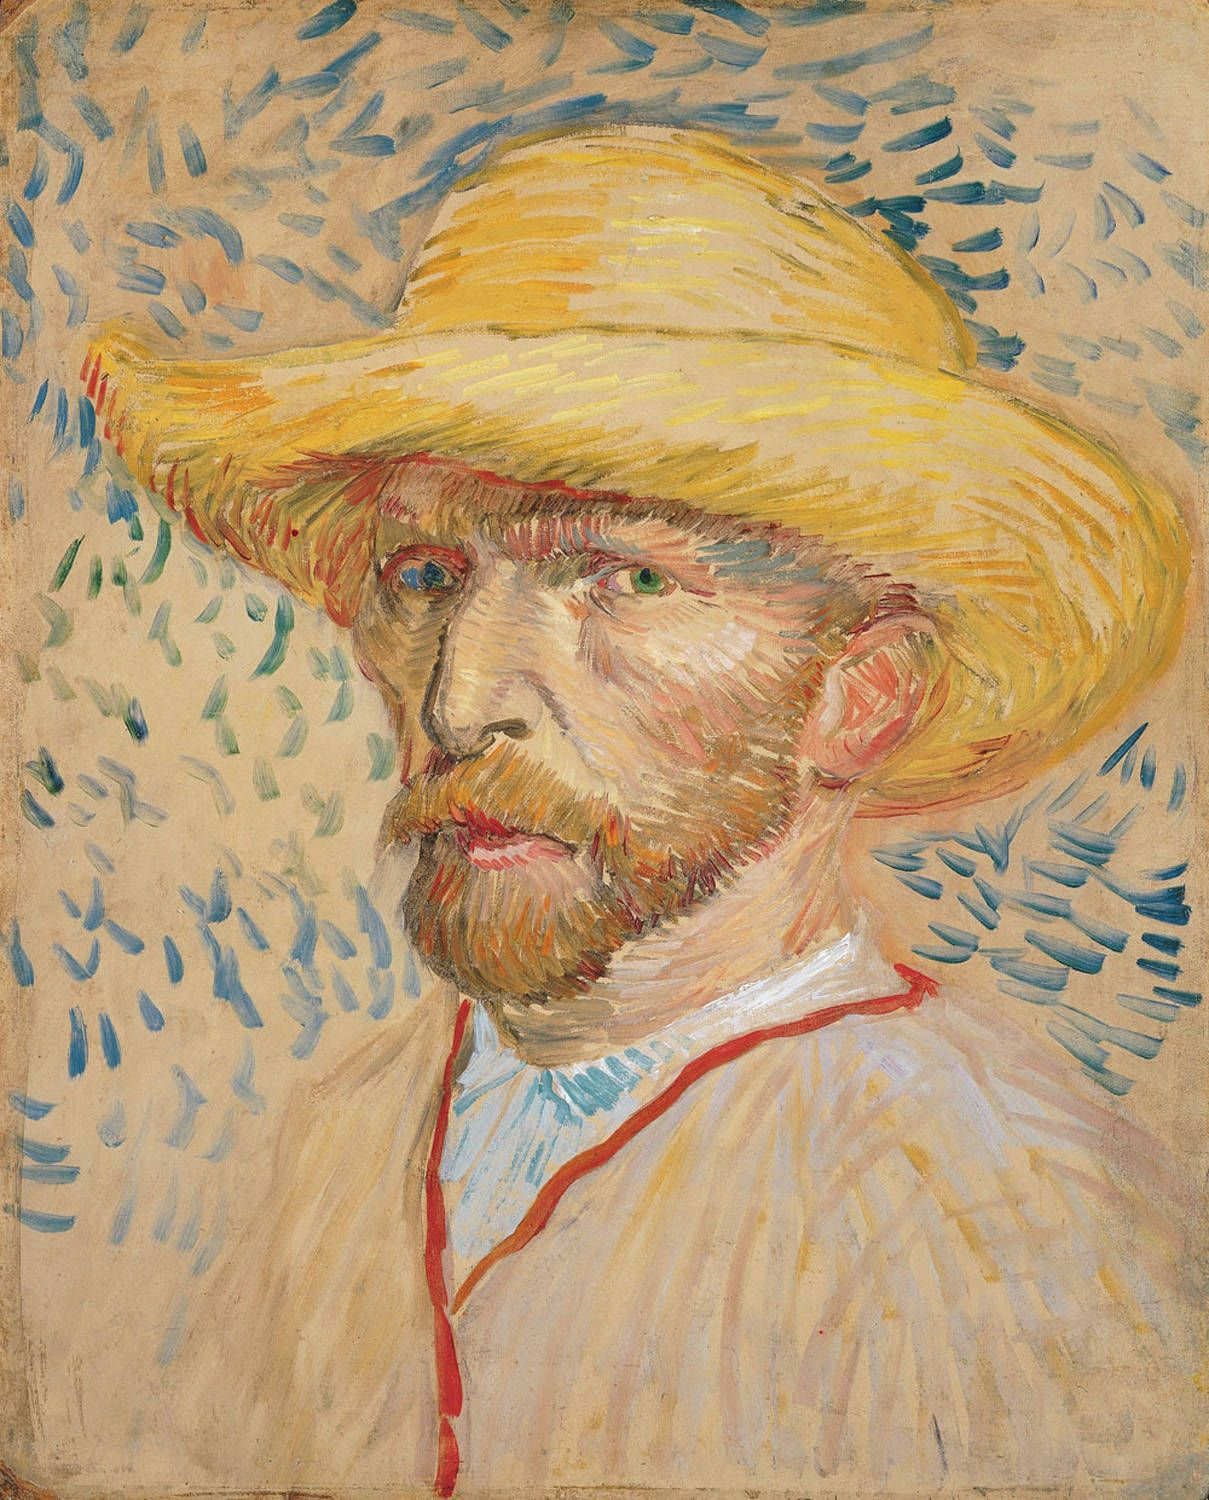 vincent van gogh self portrait a straw hat van gogh  vincent van gogh self portrait a straw hat 1887